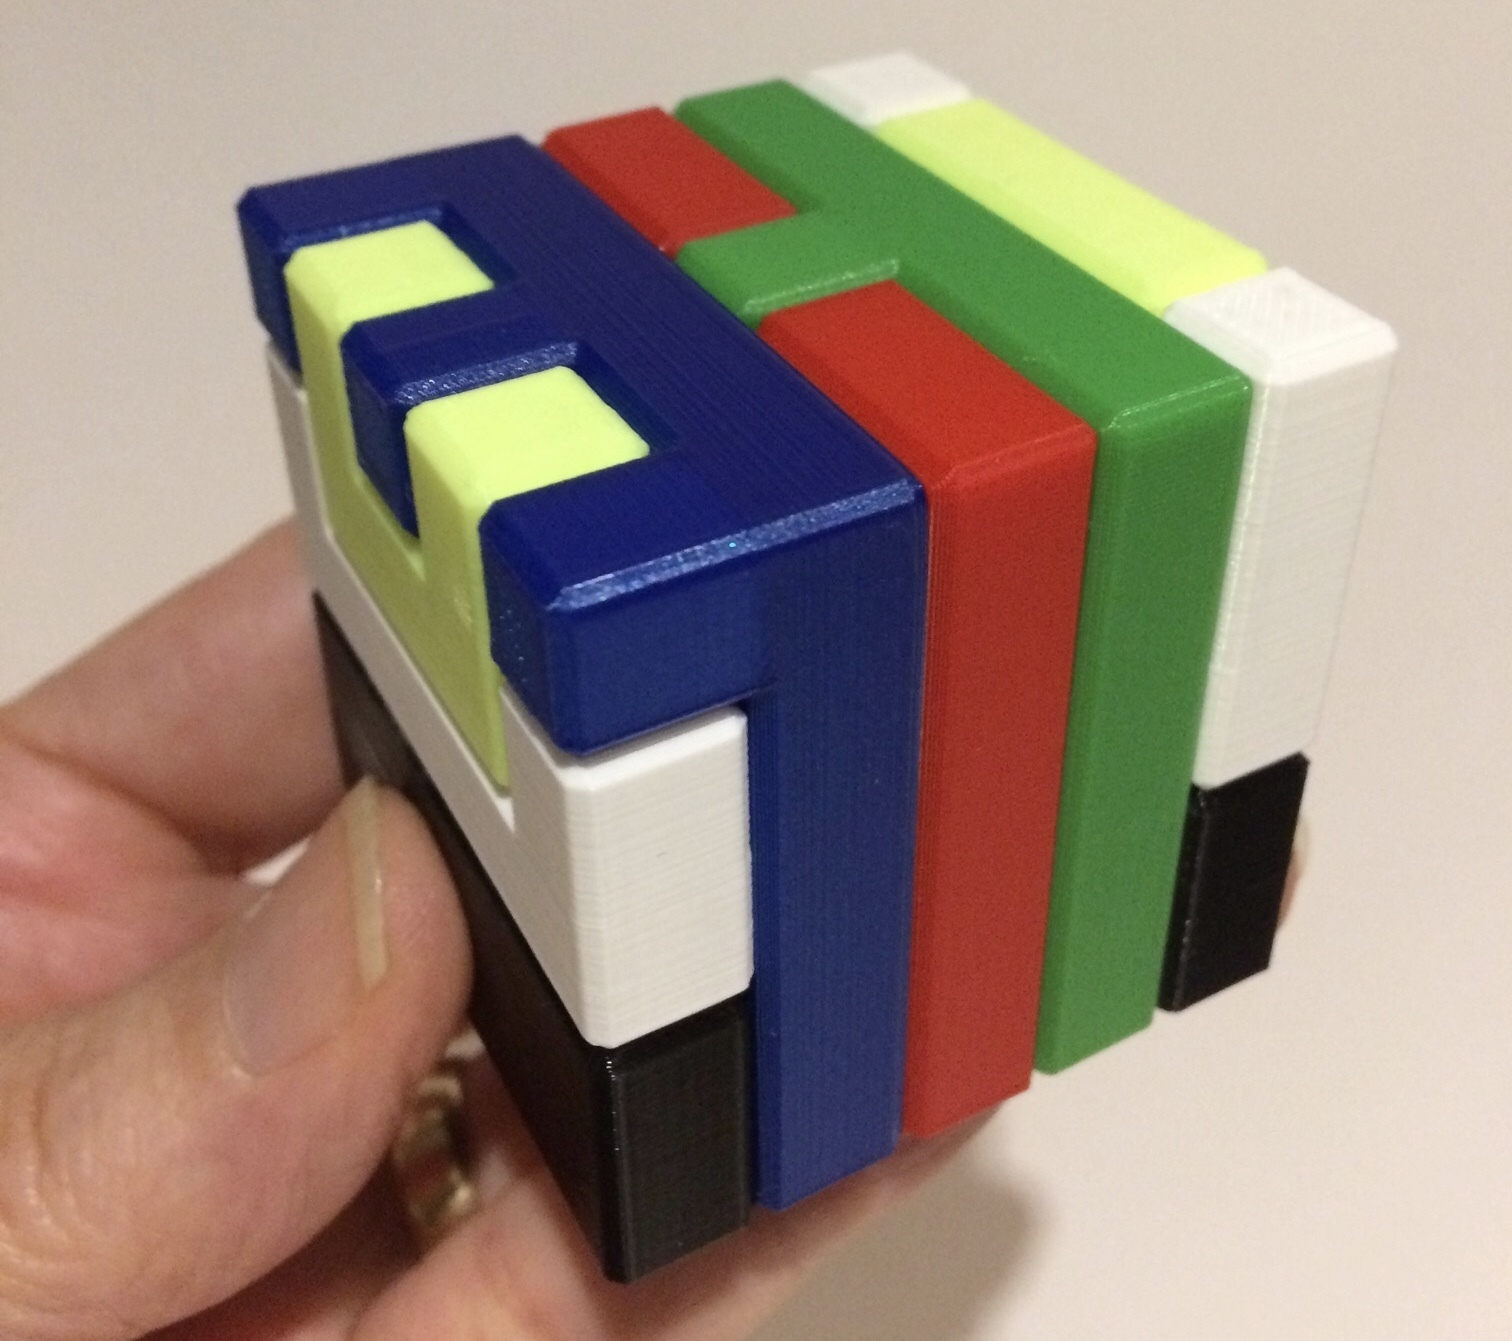 3D Printed Printable Interlocking Puzzle #4 - Level 11Richgain - 3D Printable Puzzles Cube